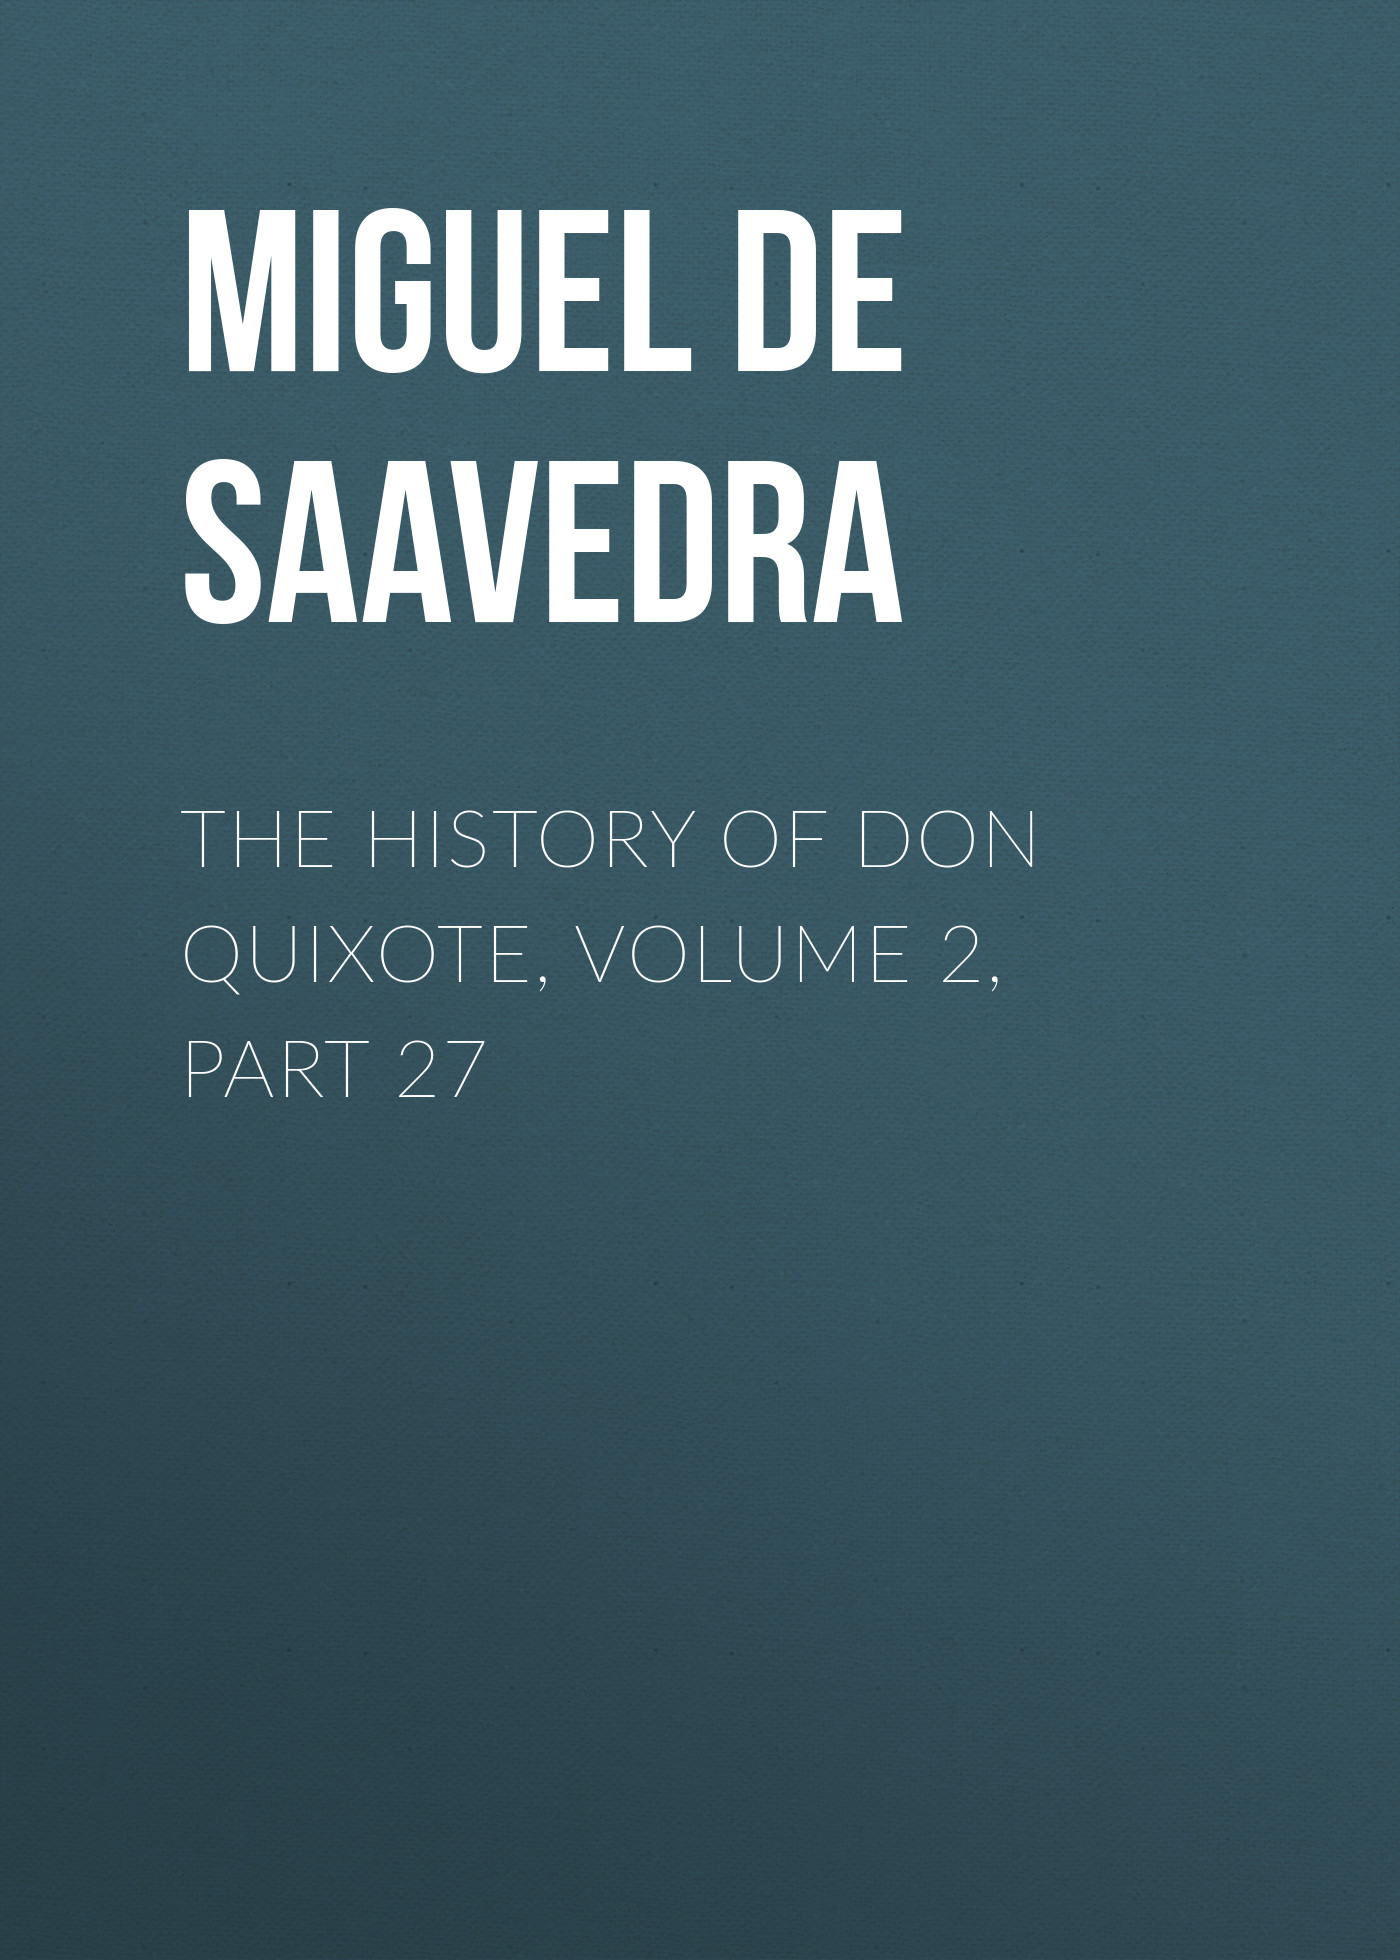 Мигель де Сервантес Сааведра The History of Don Quixote, Volume 2, Part 27 rasmus björn anderson the heimskringla a history of the norse kings volume 5 part 2